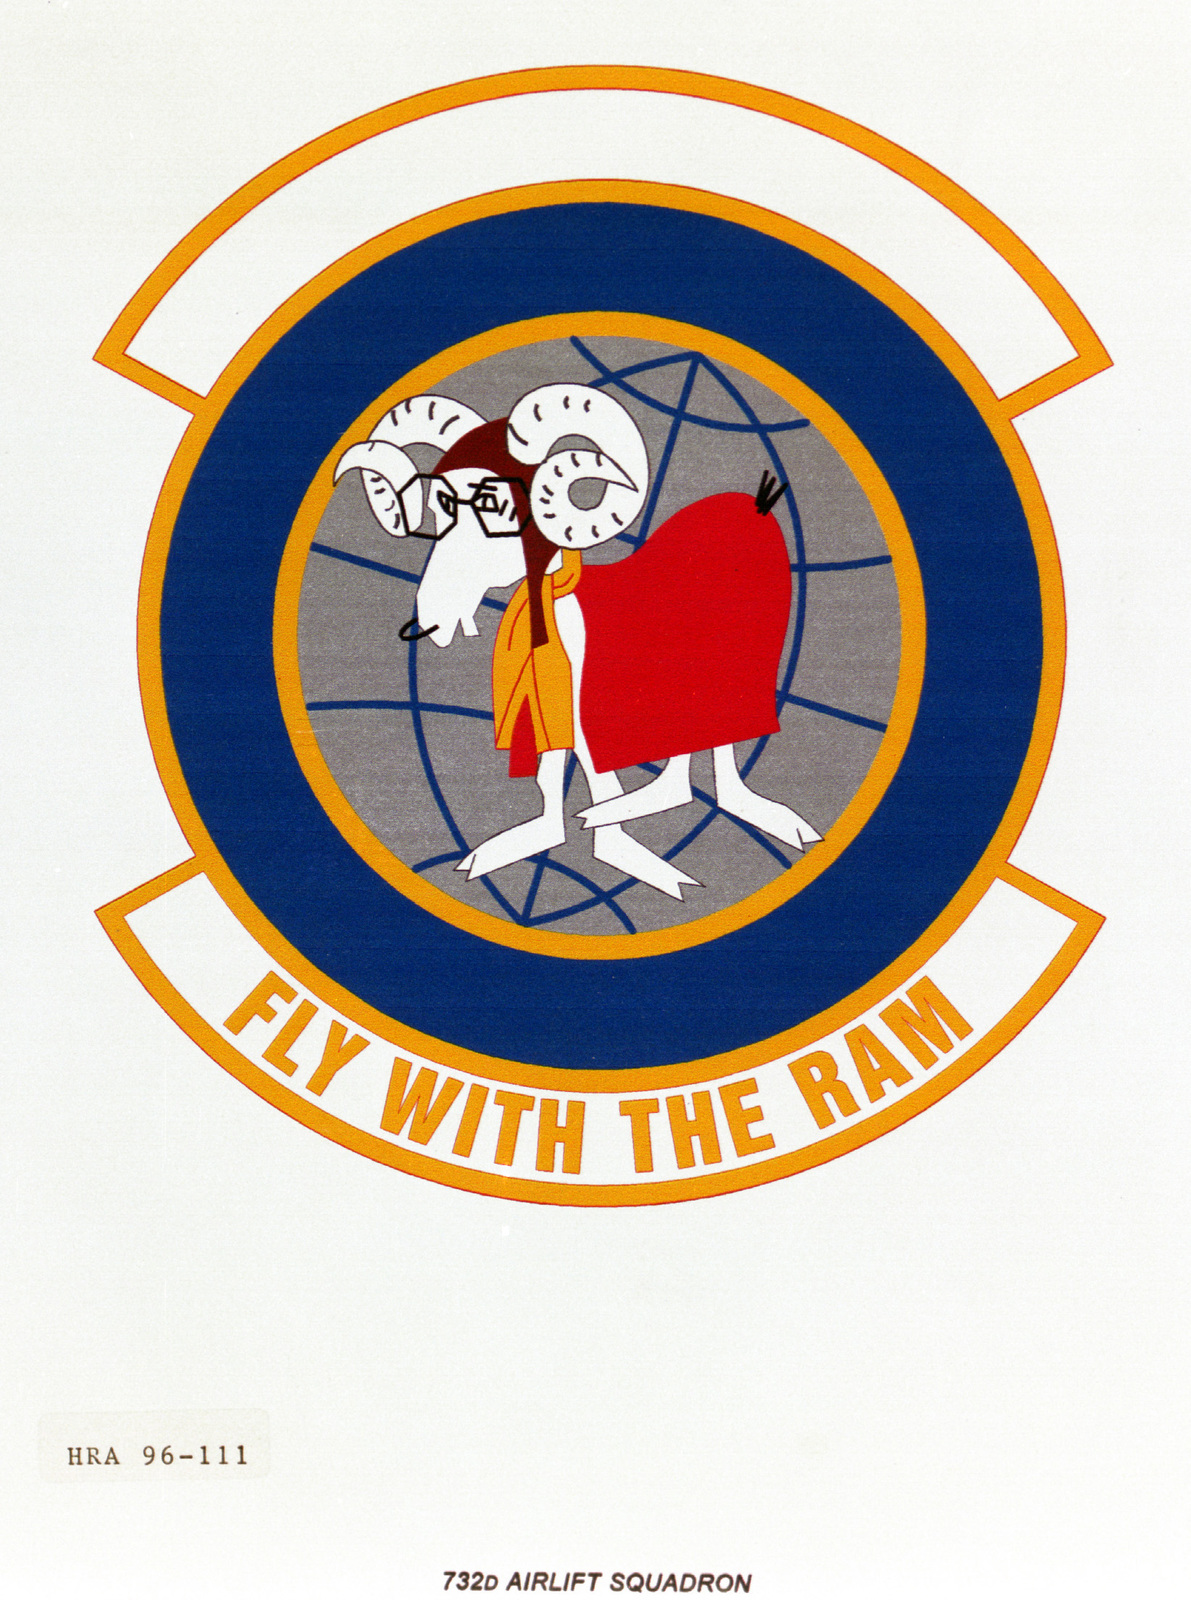 Air Force Organizational Emblem. 732nd Airlift Squadron Exact Date Shot Unknown